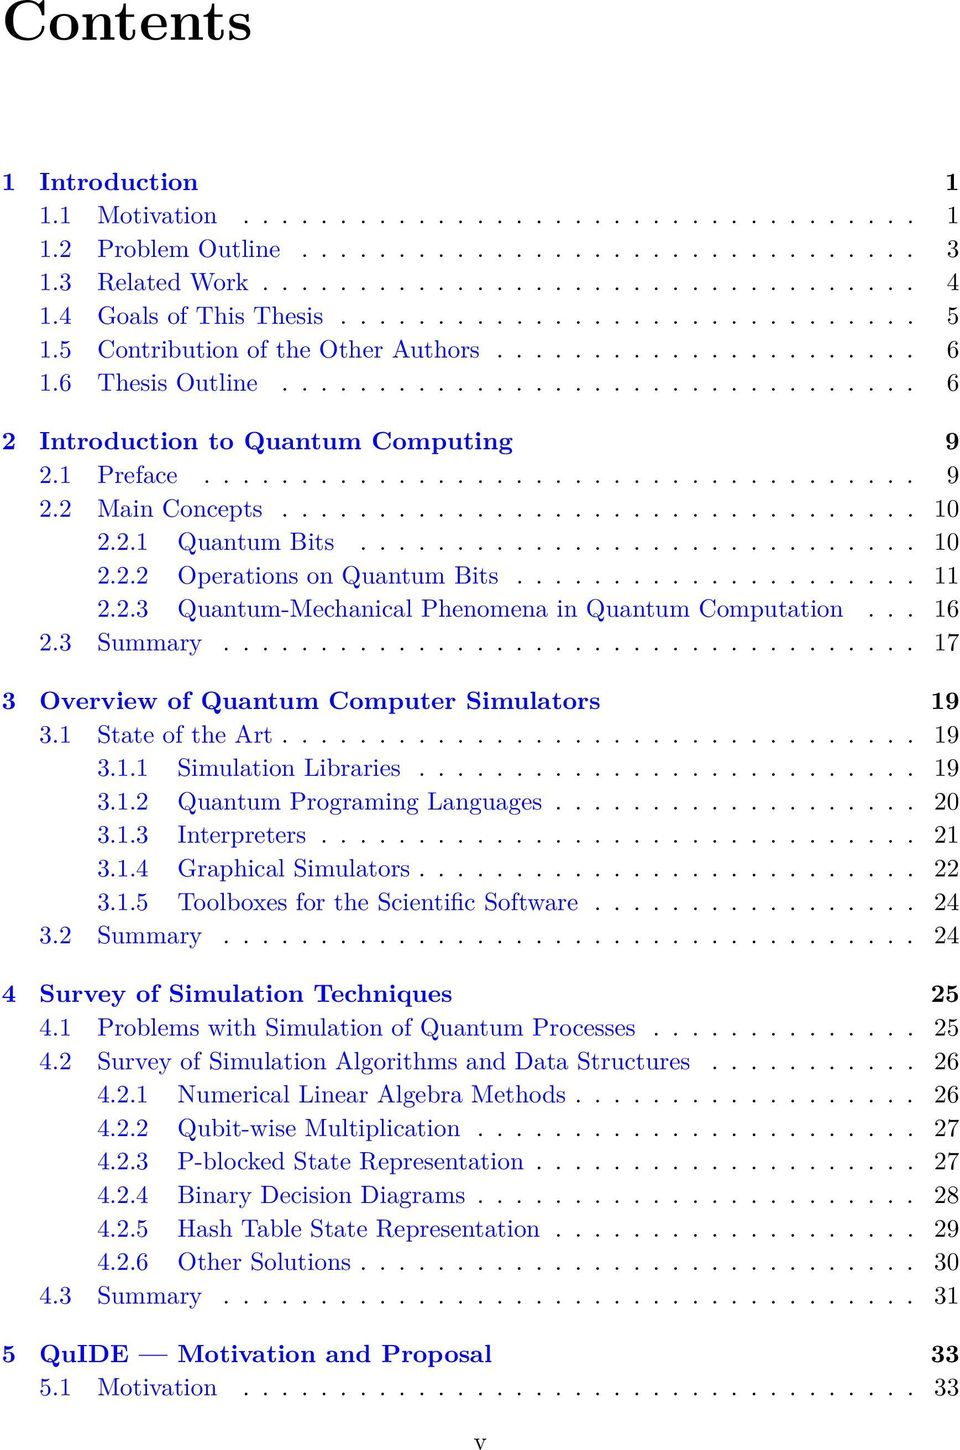 1 Preface..................................... 9 2.2 Main Concepts................................. 10 2.2.1 Quantum Bits............................. 10 2.2.2 Operations on Quantum Bits..................... 11 2.